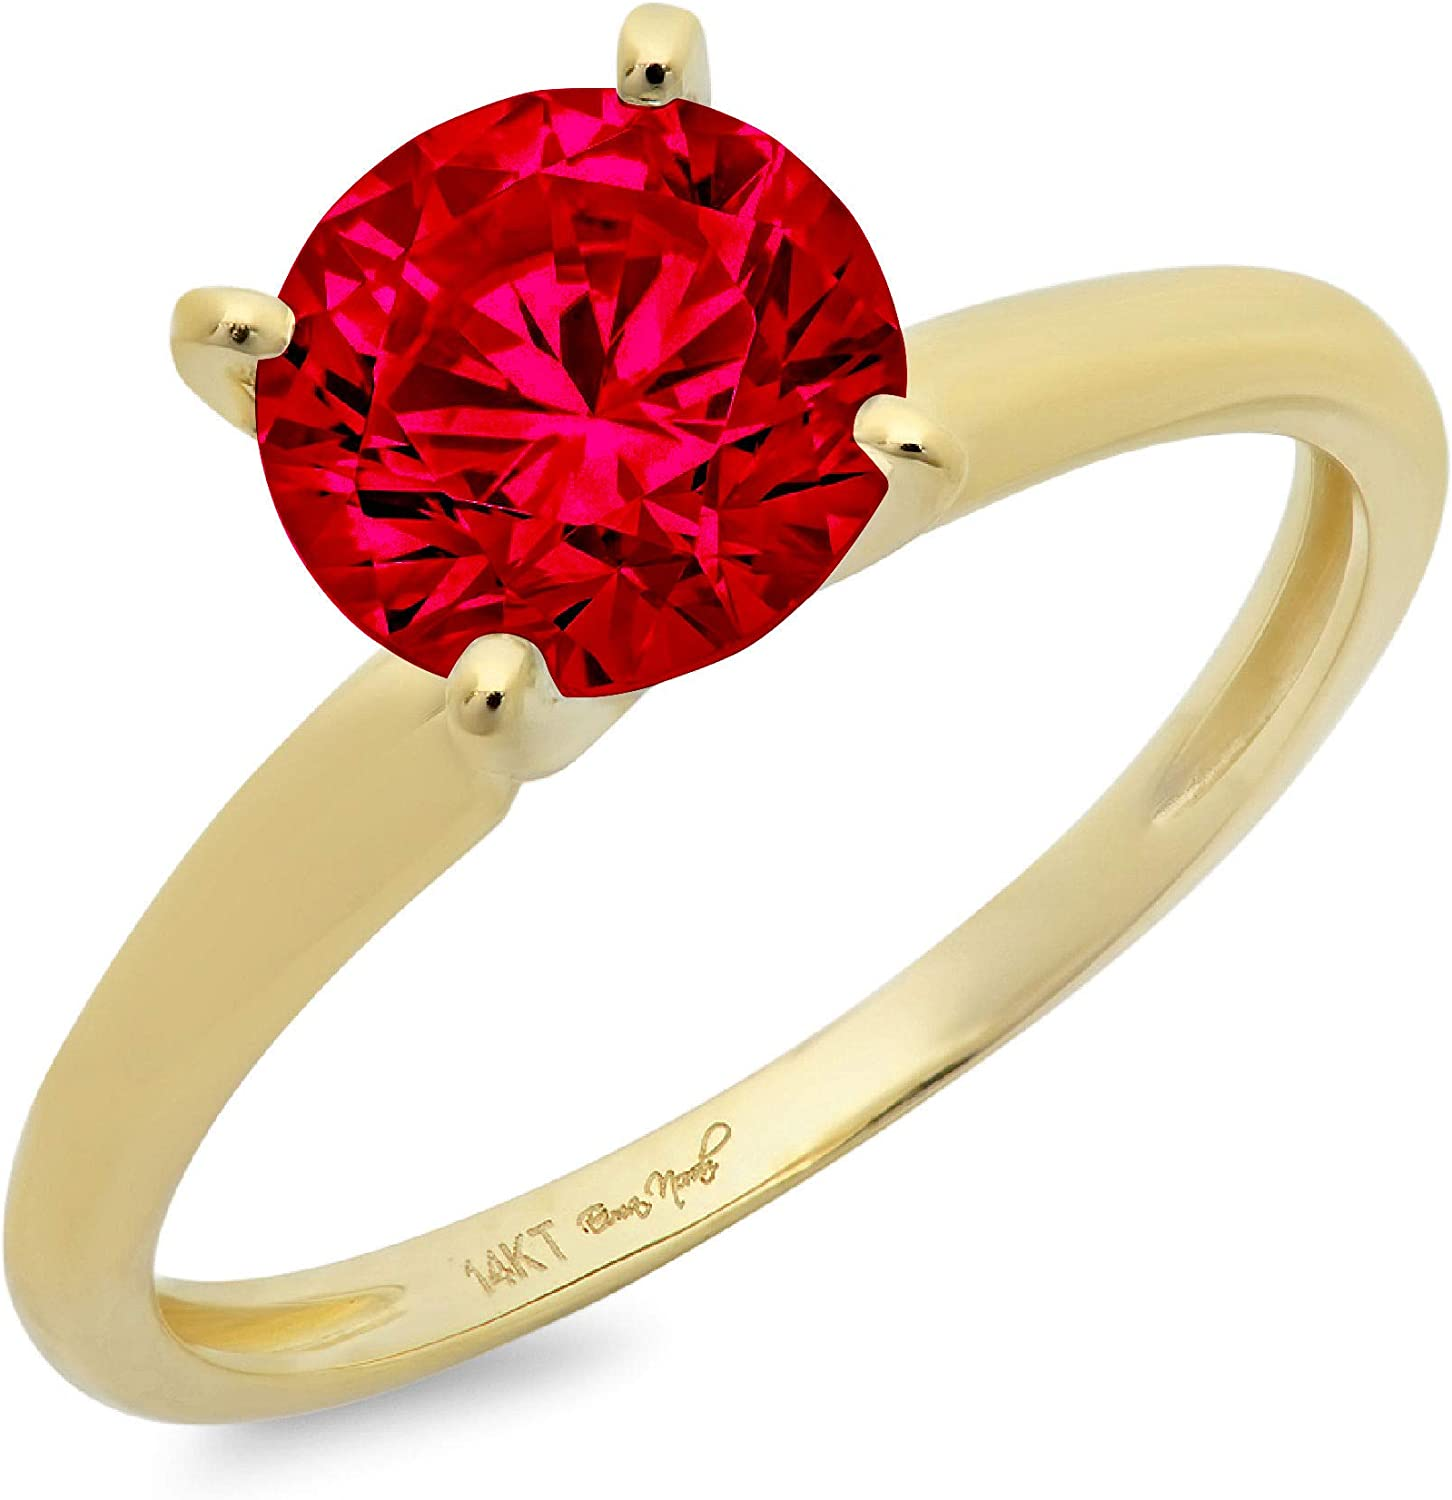 1.0 ct Brilliant Round Cut Solitaire Flawless Stunning Pink Tourmaline Ideal VVS1 4-Prong Engagement Wedding Bridal Promise Anniversary Designer Ring in Solid 14k Yellow Gold for Women